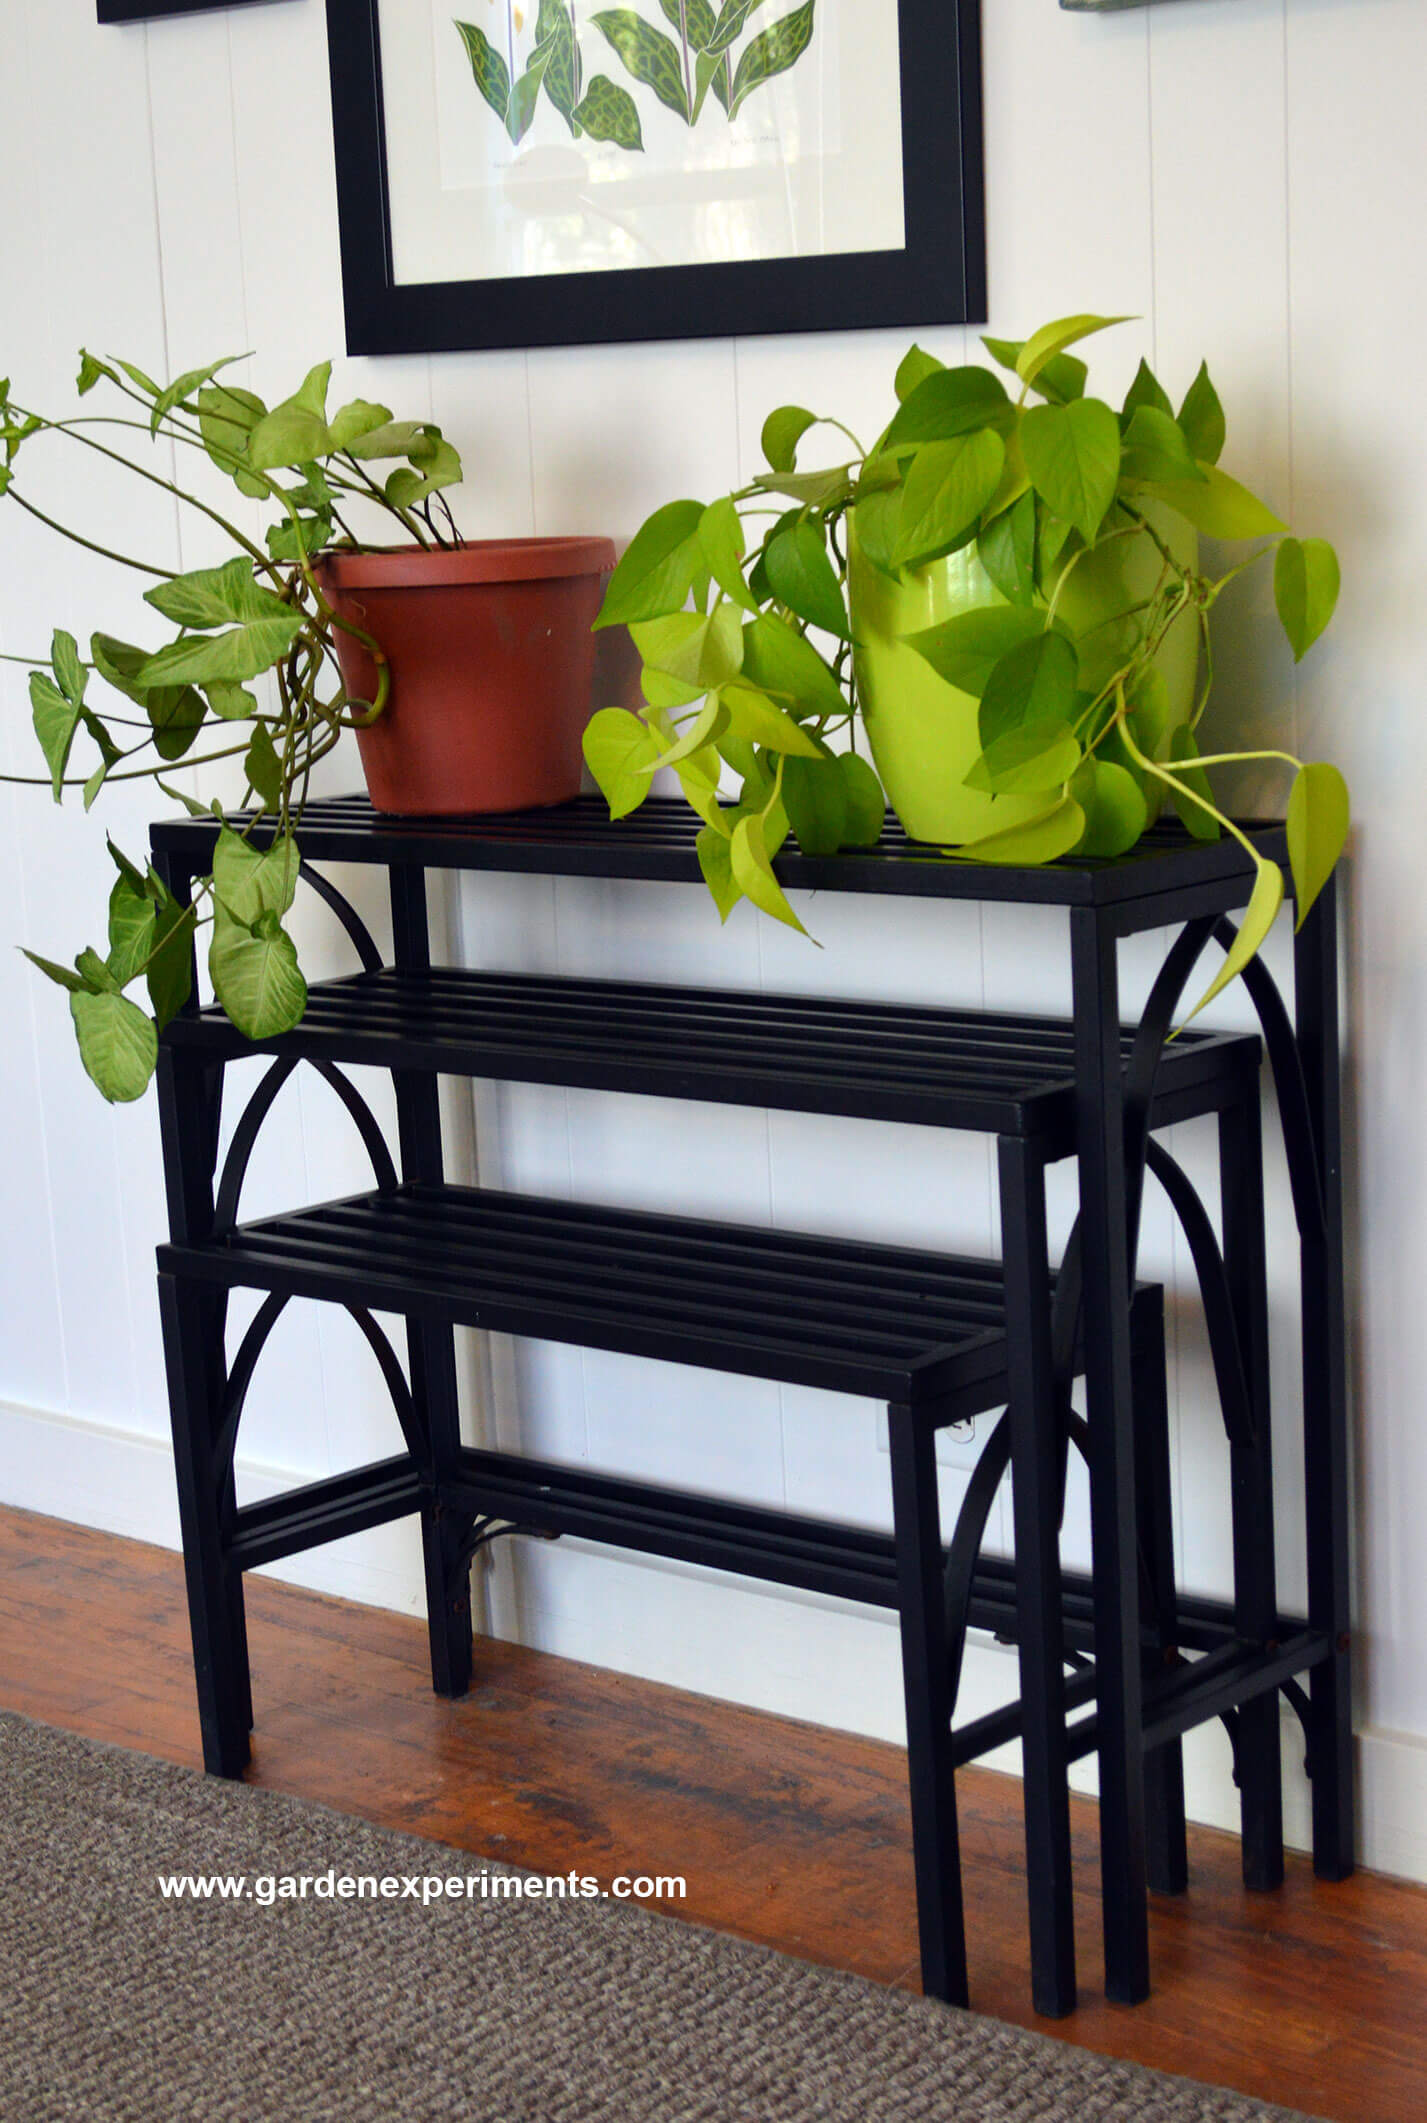 Sturdy Metal Plant Stand Holds 12 Plants